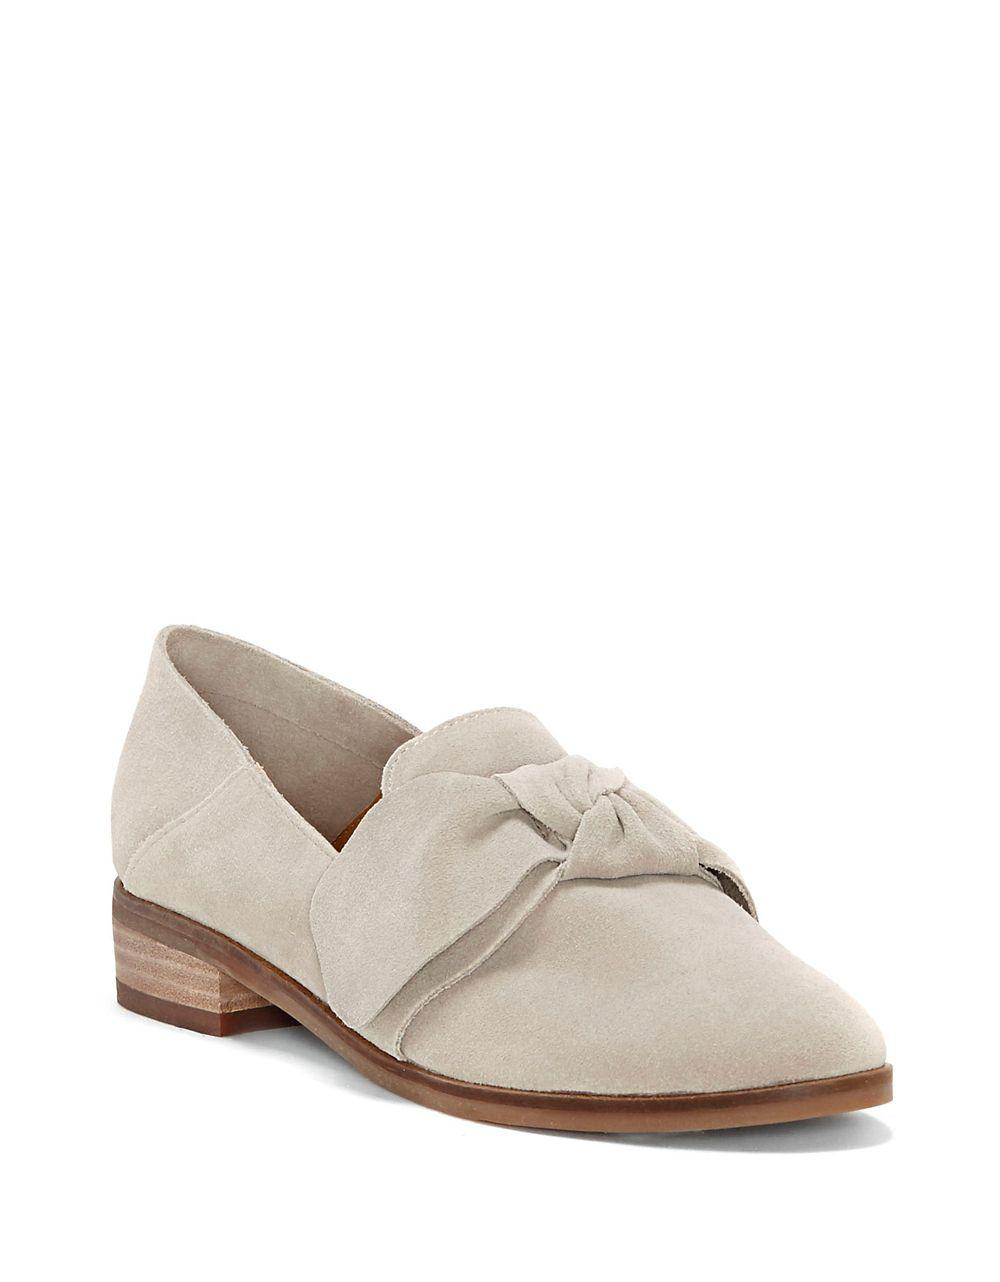 6818f672cfb Lucky Brand Cozzmo Leather Knot Loafers in Gray - Lyst